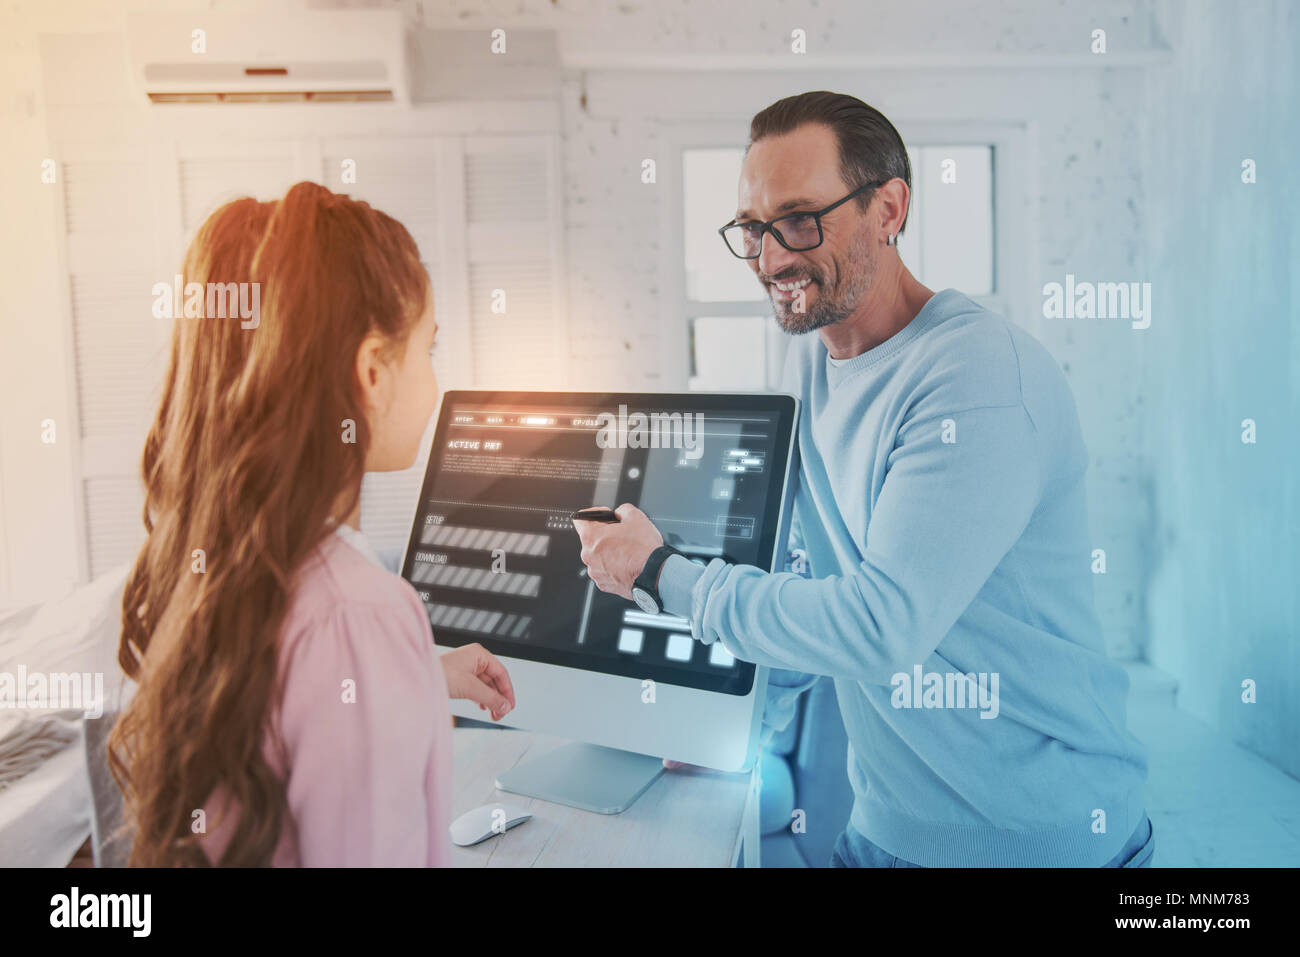 Emotional teacher pointing to the screen and looking attentively at his pupil - Stock Image